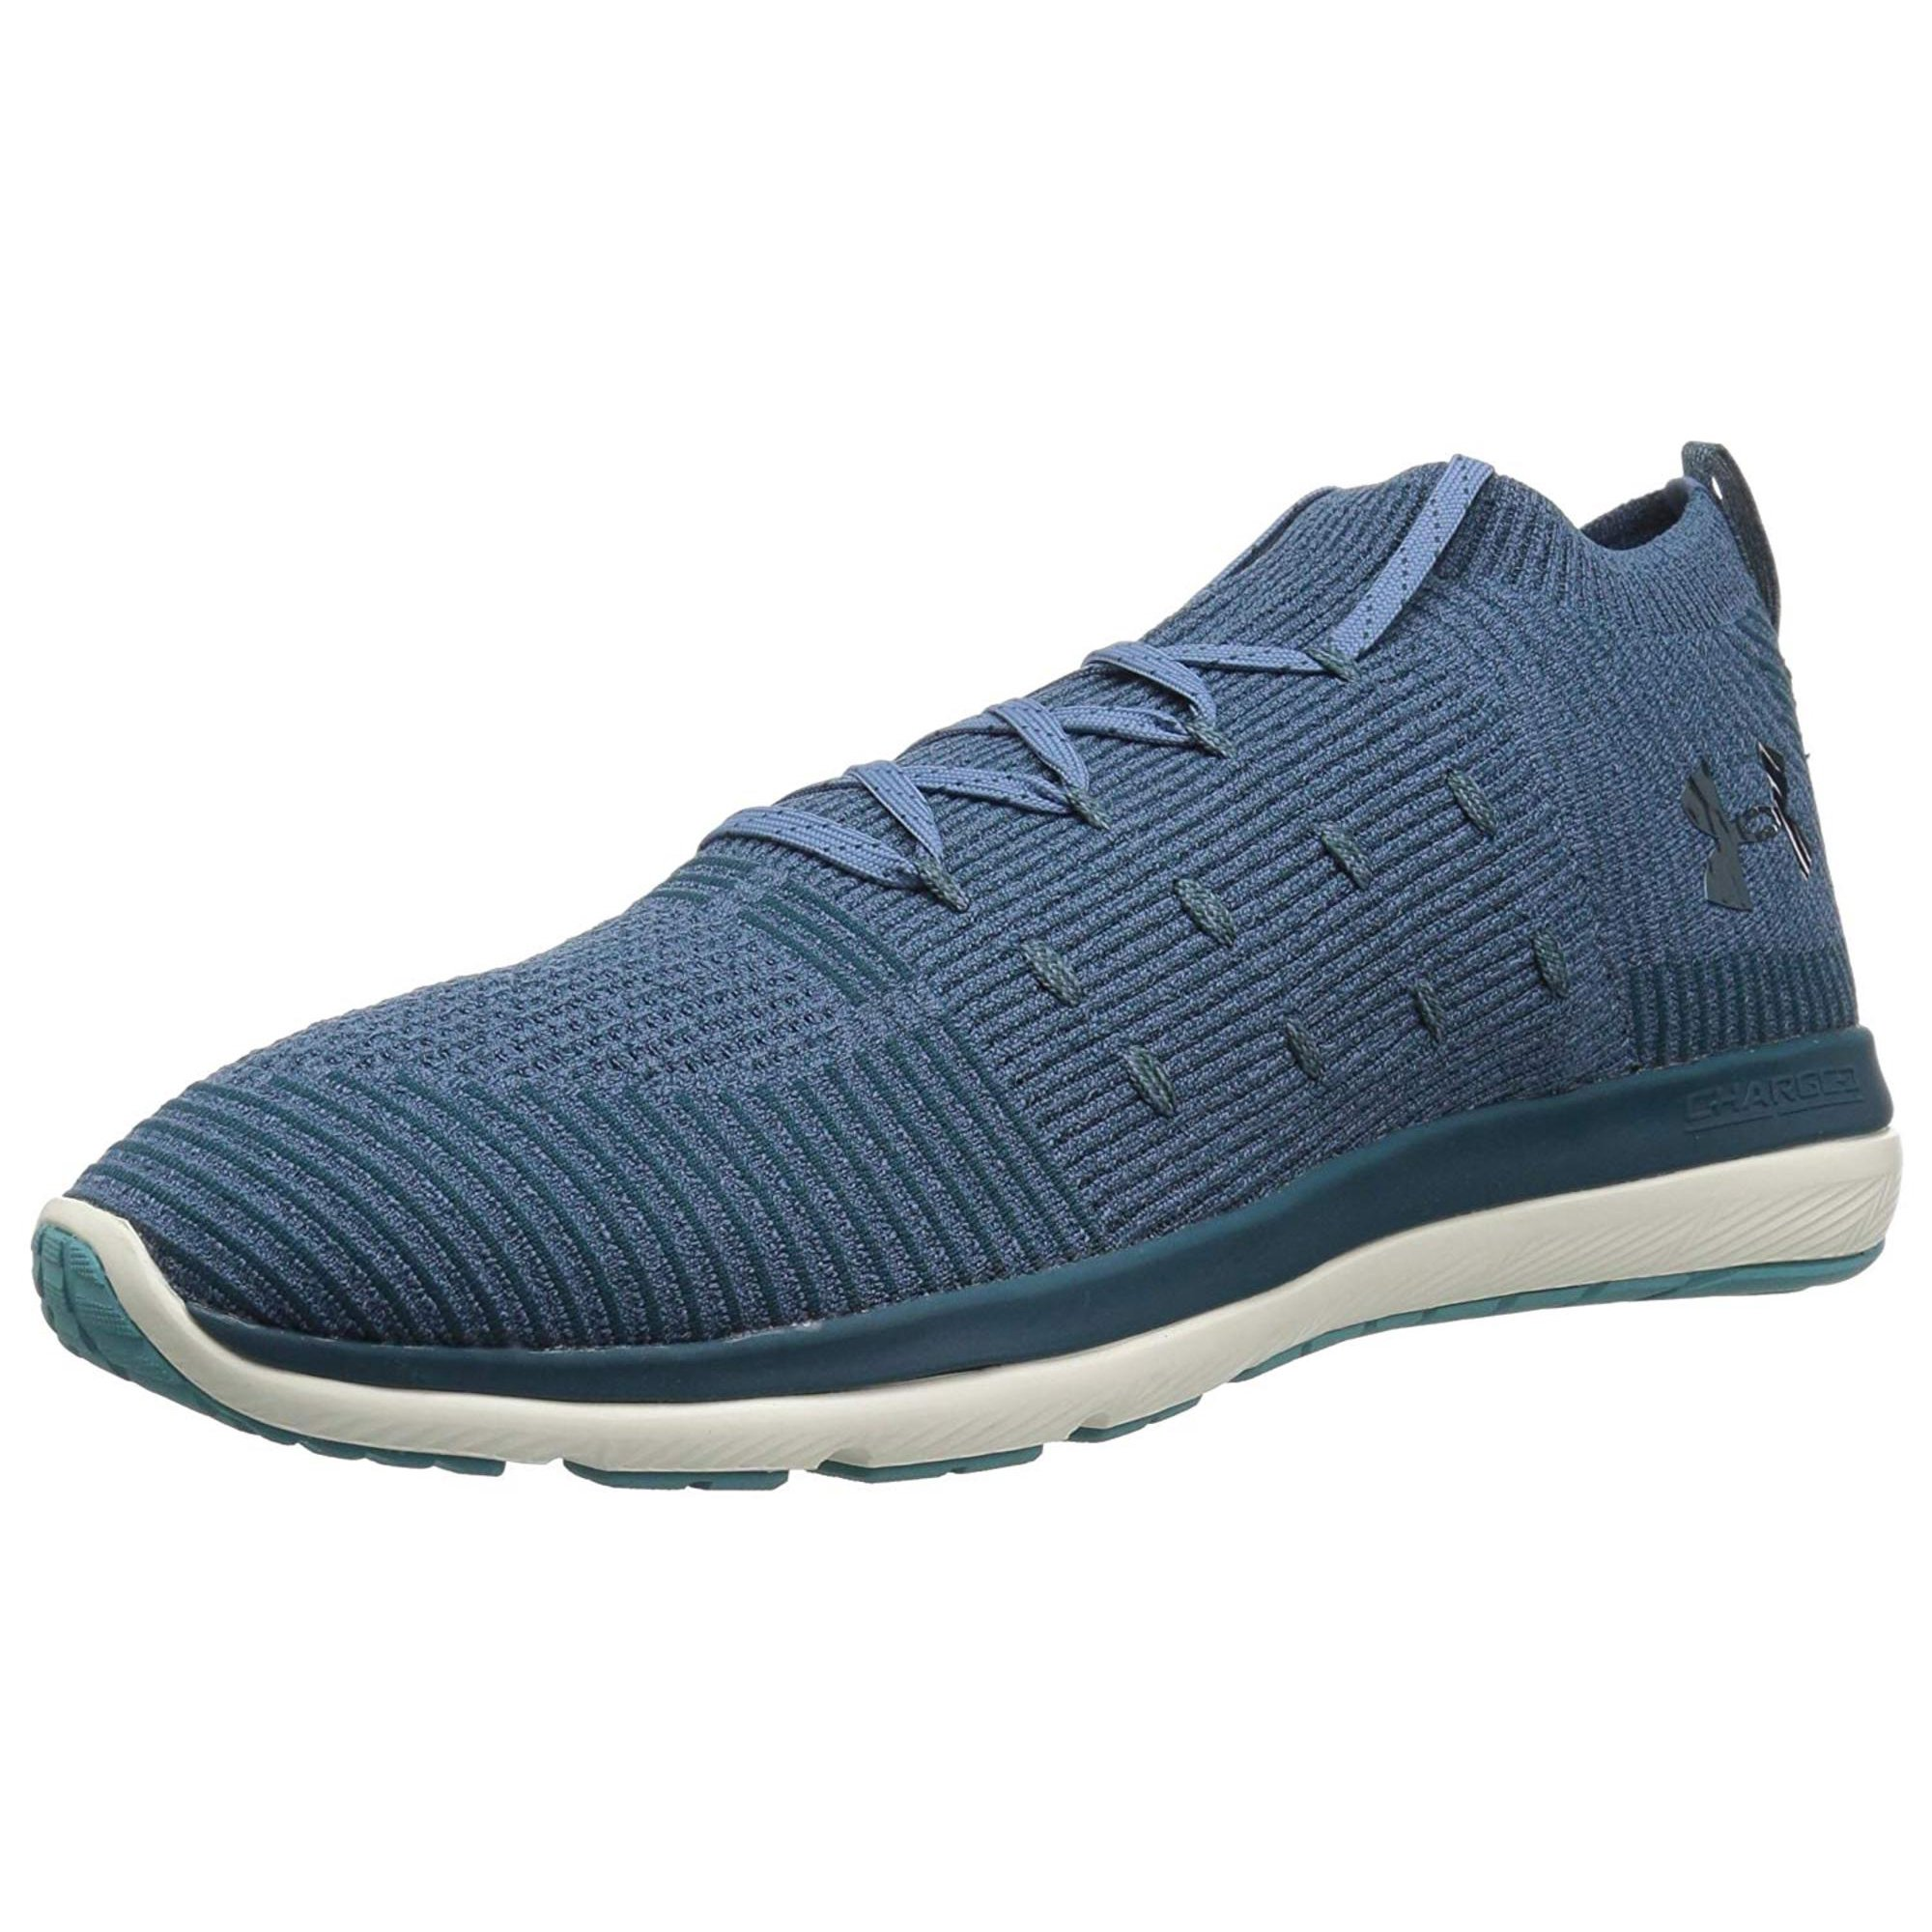 superior quality d6f18 b7173 Under Armour Men's Slingflex Rise Sneaker | Walmart Canada